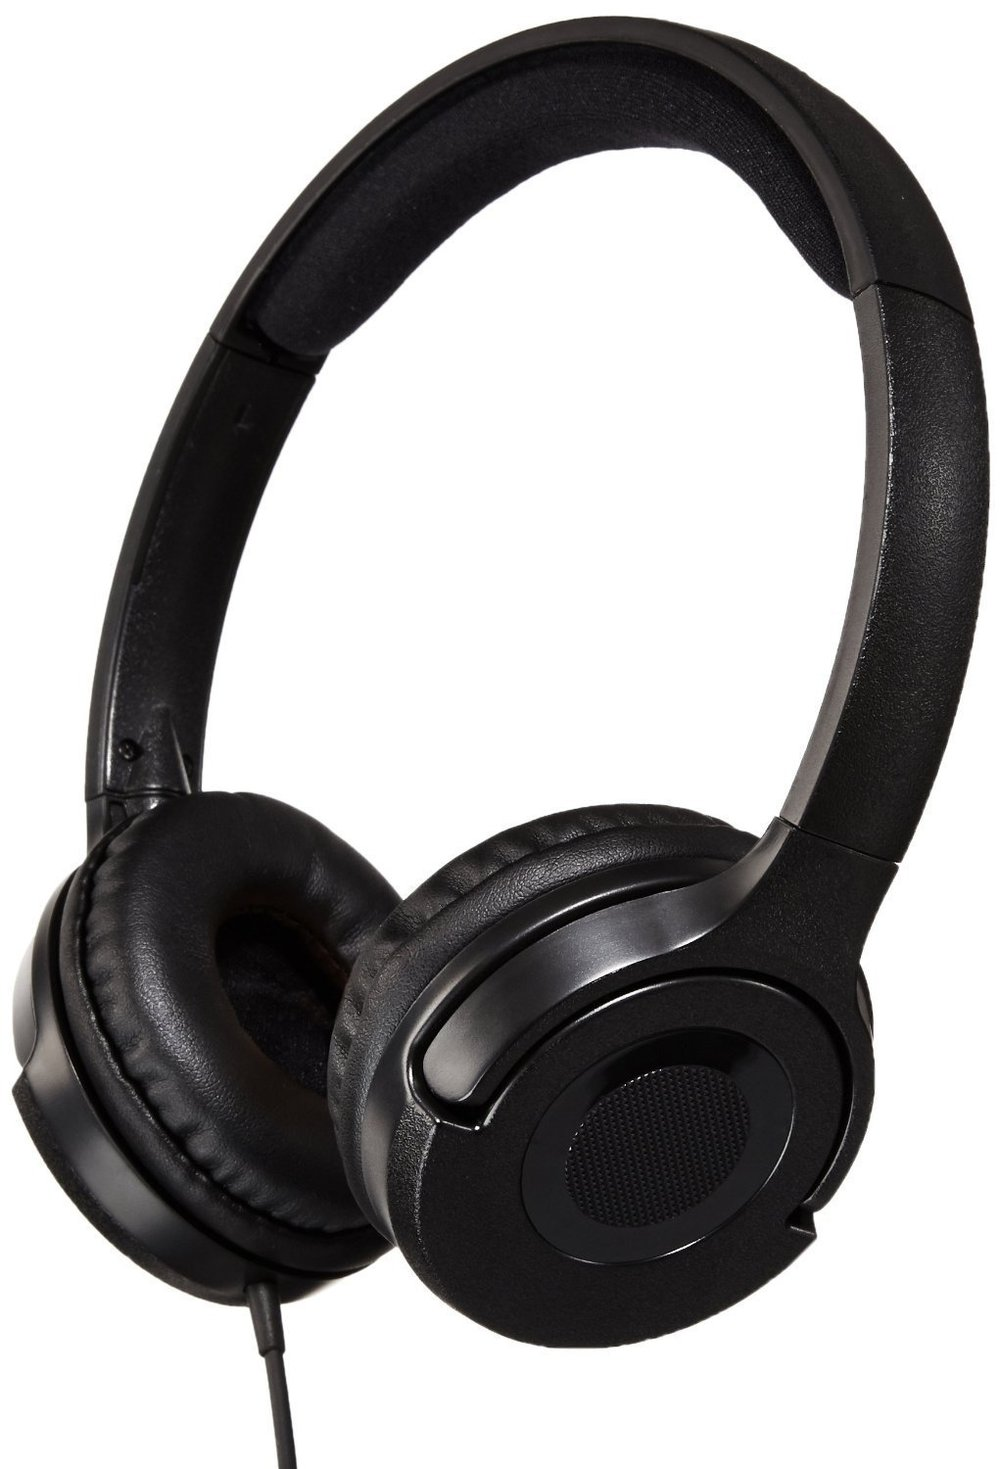 AMAZONBASICS LIGHTWEIGHT ON-EAR HEADPHONES - BLACK: ELECTRONICS